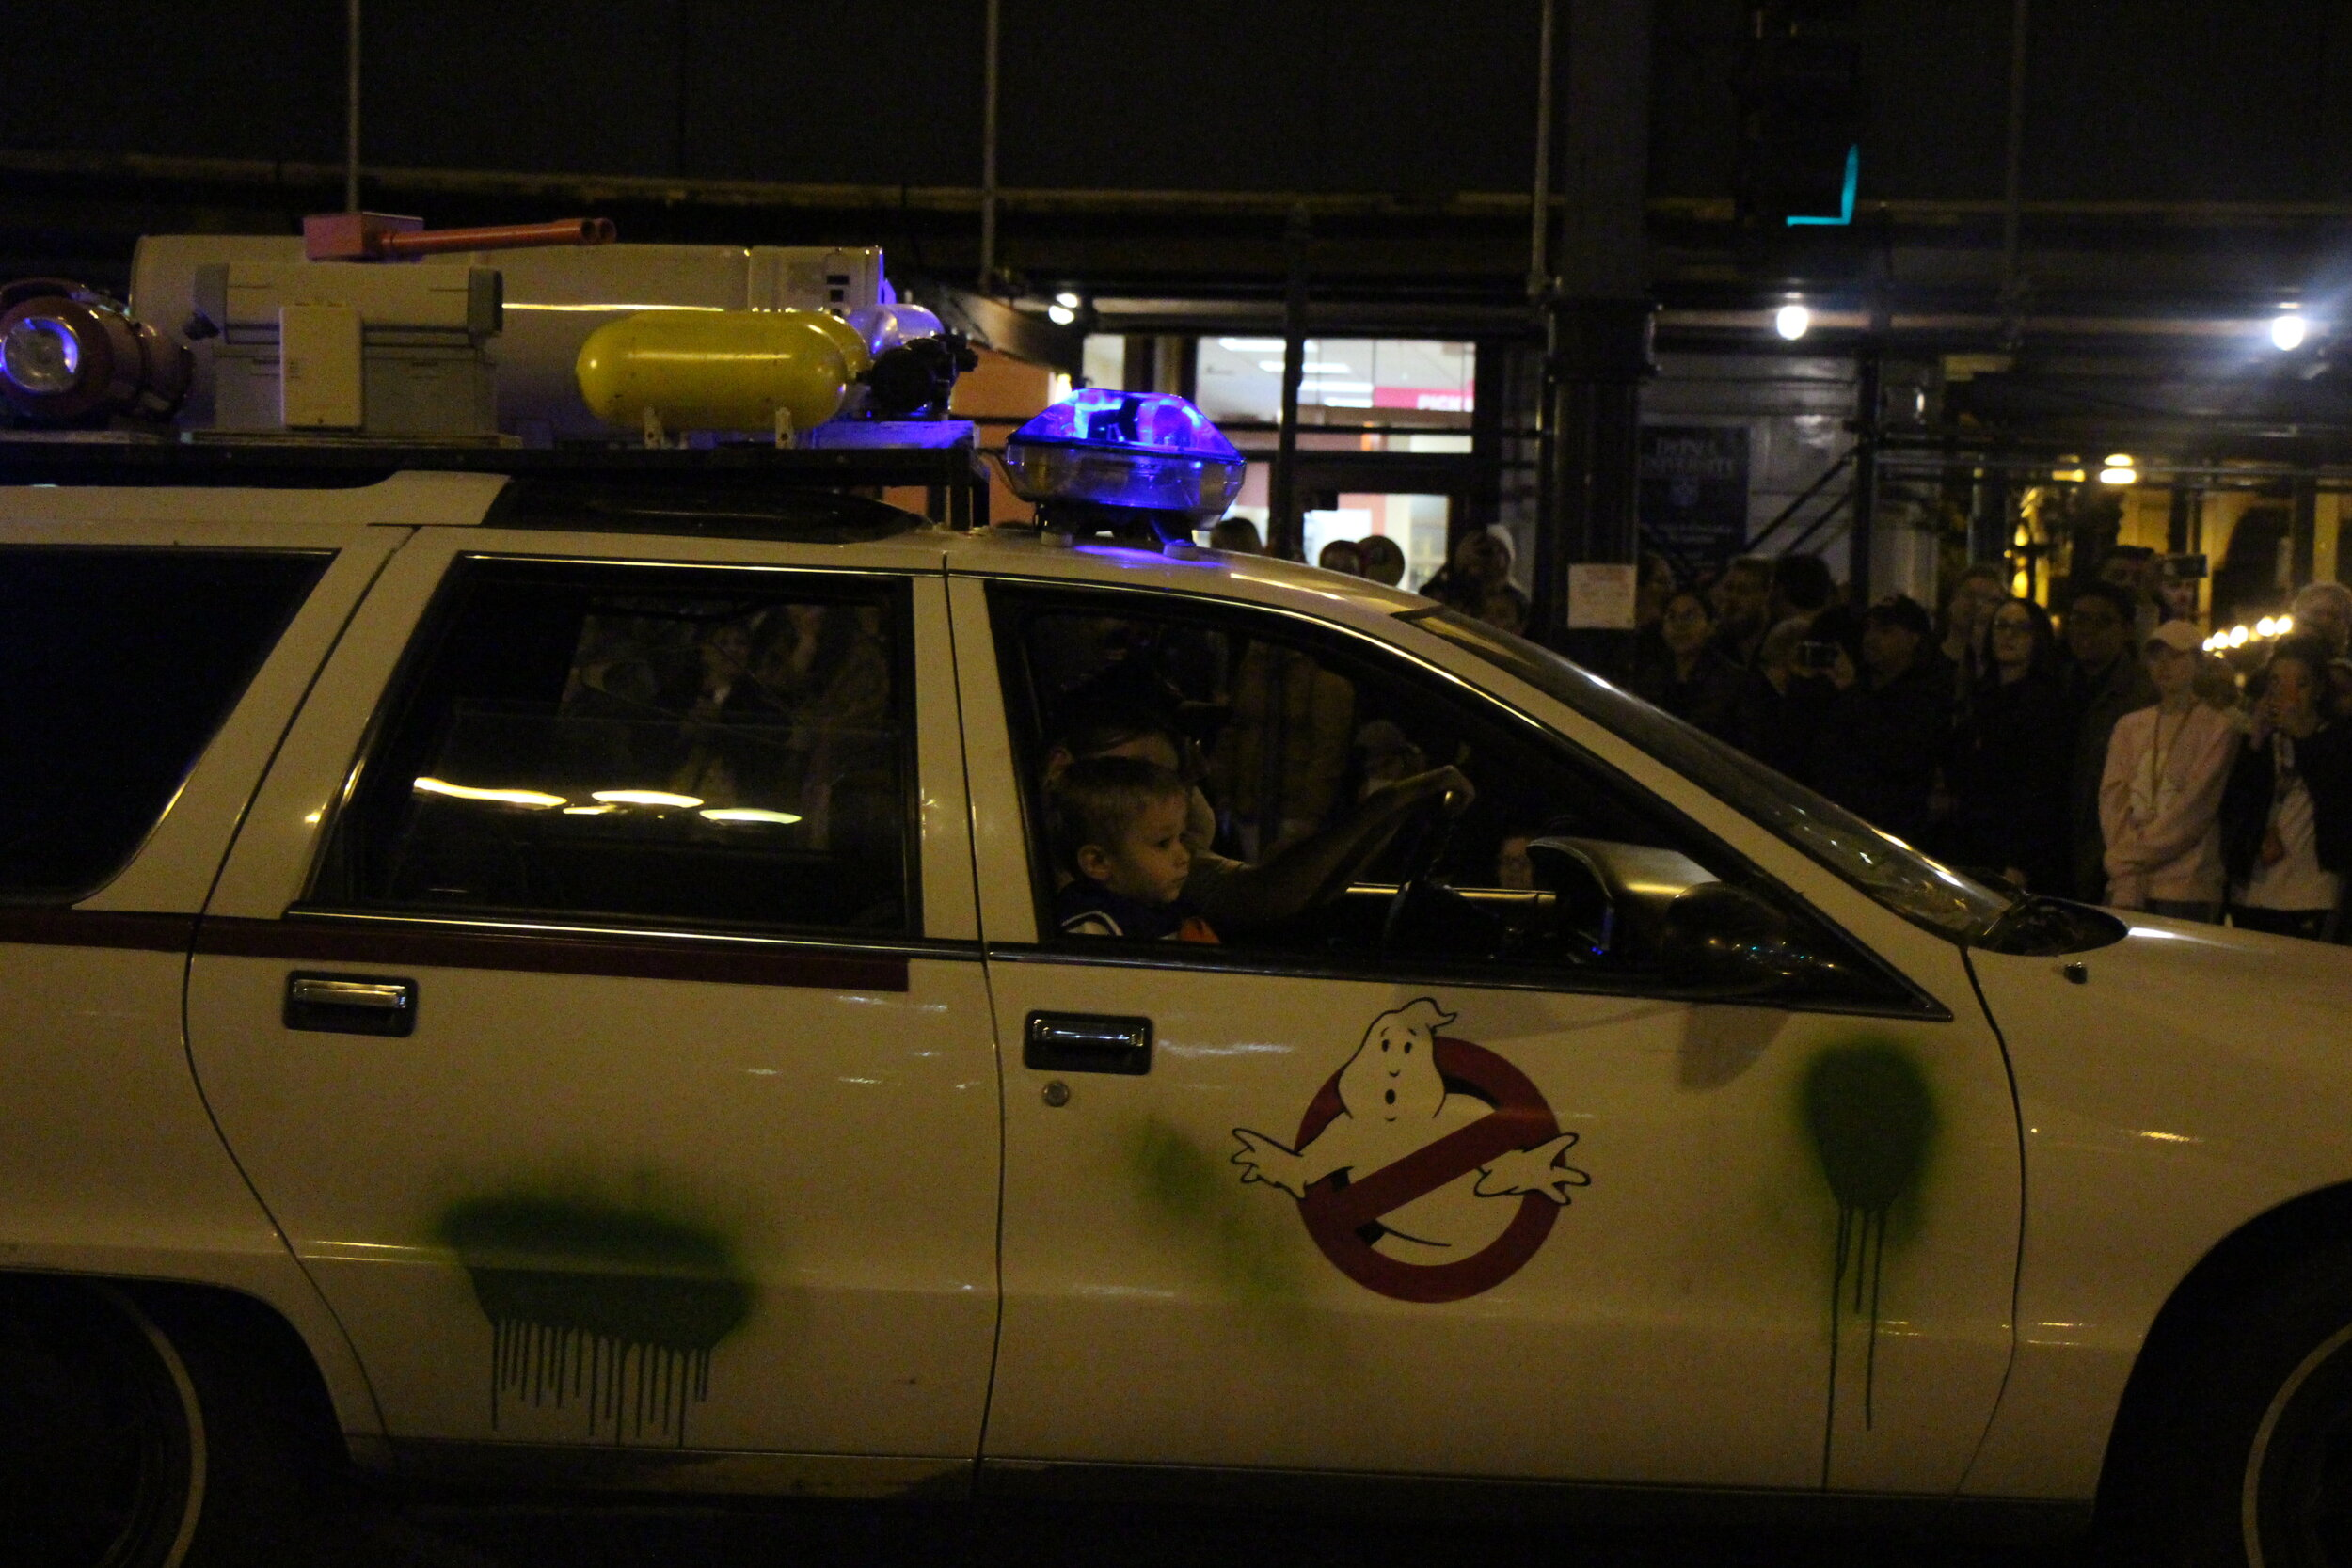 Ghostbusters out and about at The Art in the Dark parade.